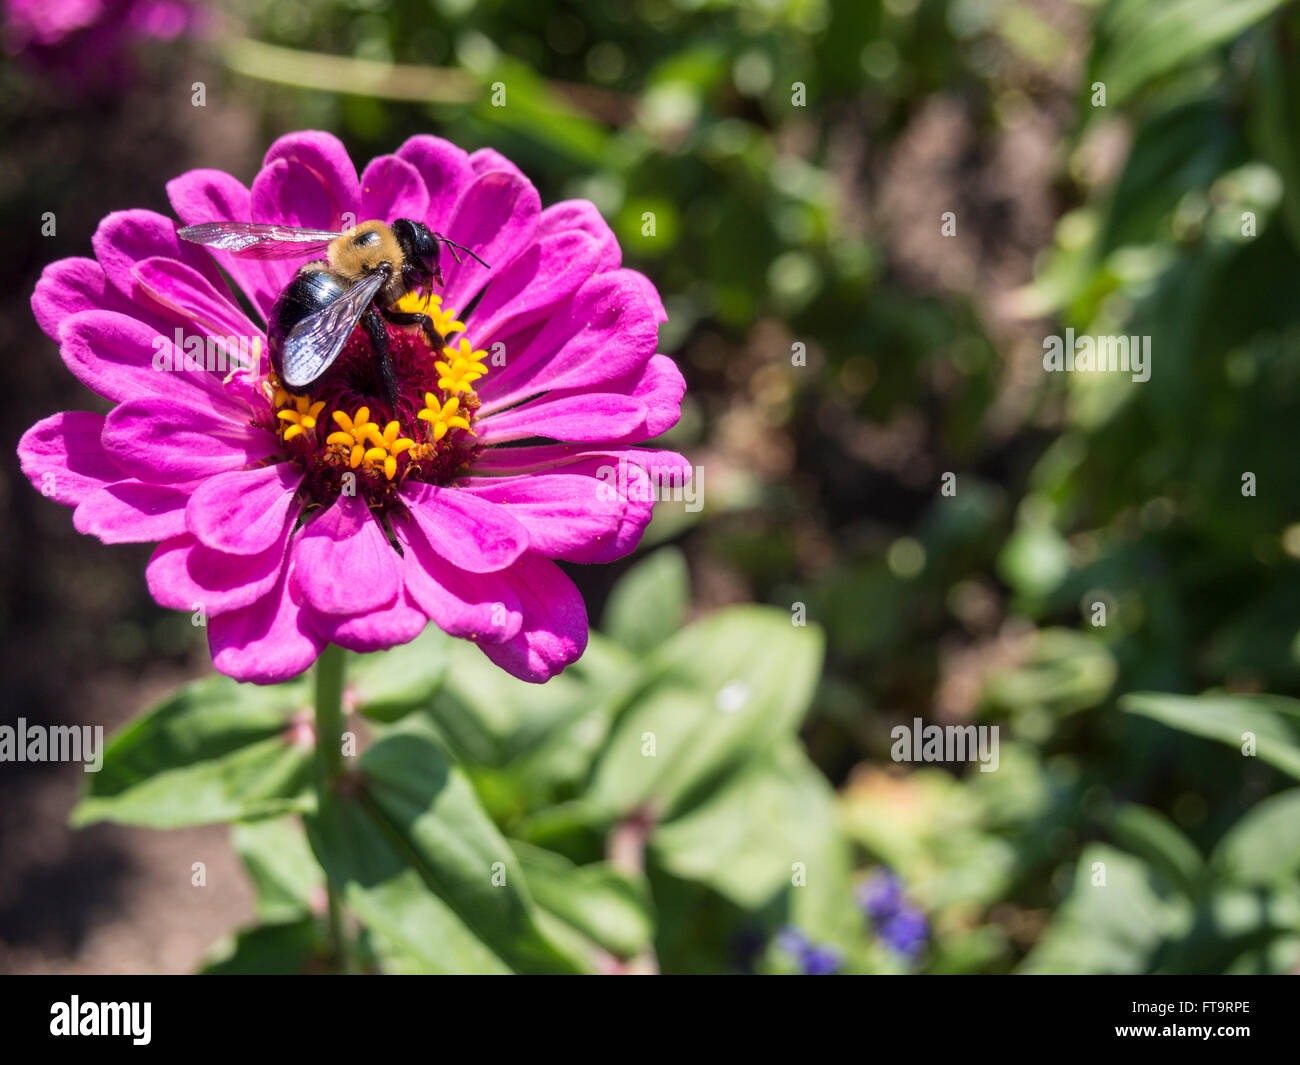 Large Carpenter Bee on a magenta Zinnia flower. A large bee works to gather nectar and pollinate a bright pink flower. - Stock Image